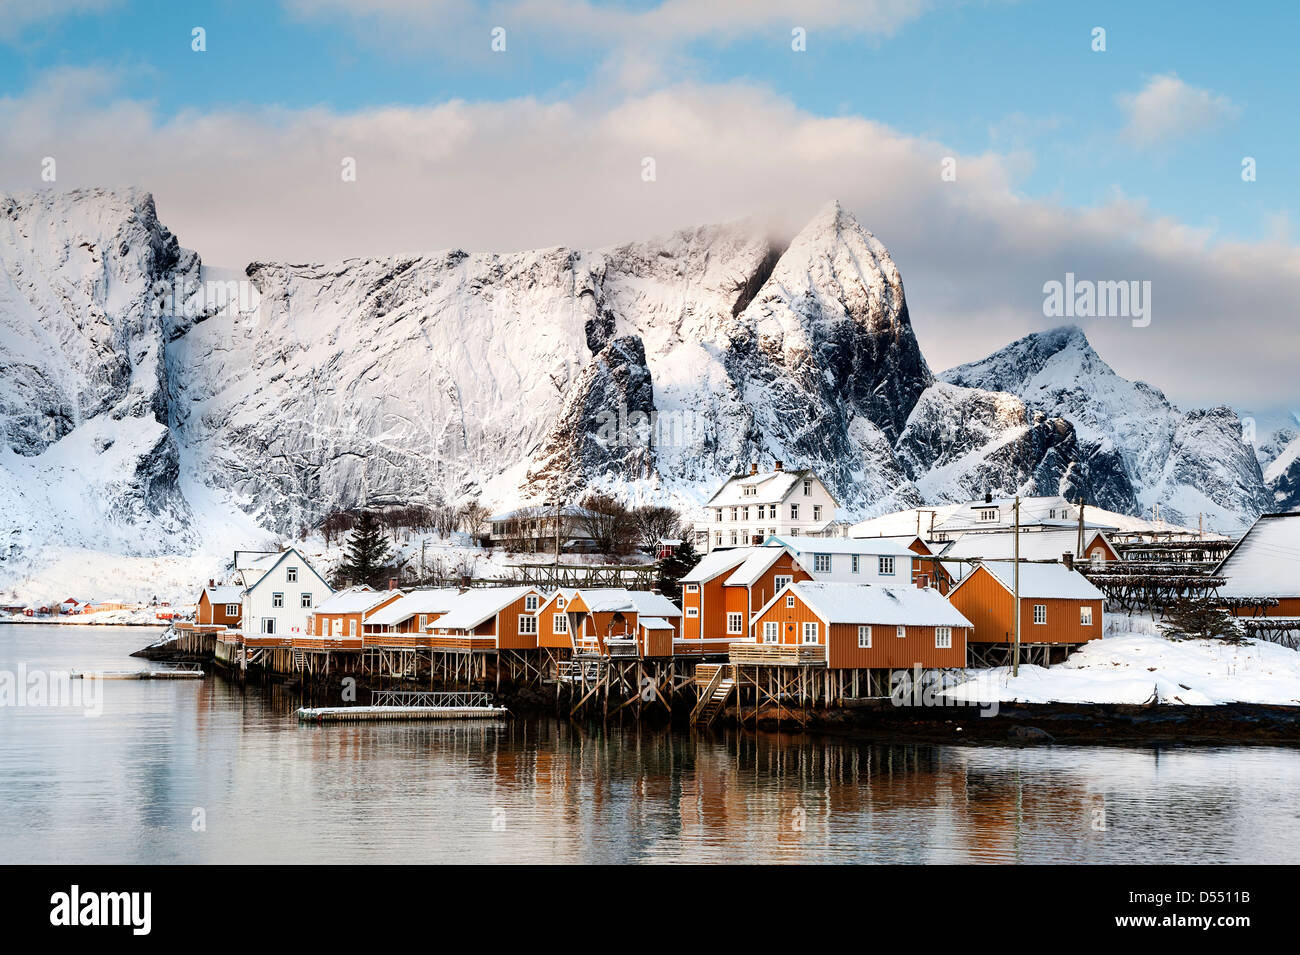 A view of Rorbus at Sakrisoy on the Lofoten islands with Navaren in the background - Stock Image